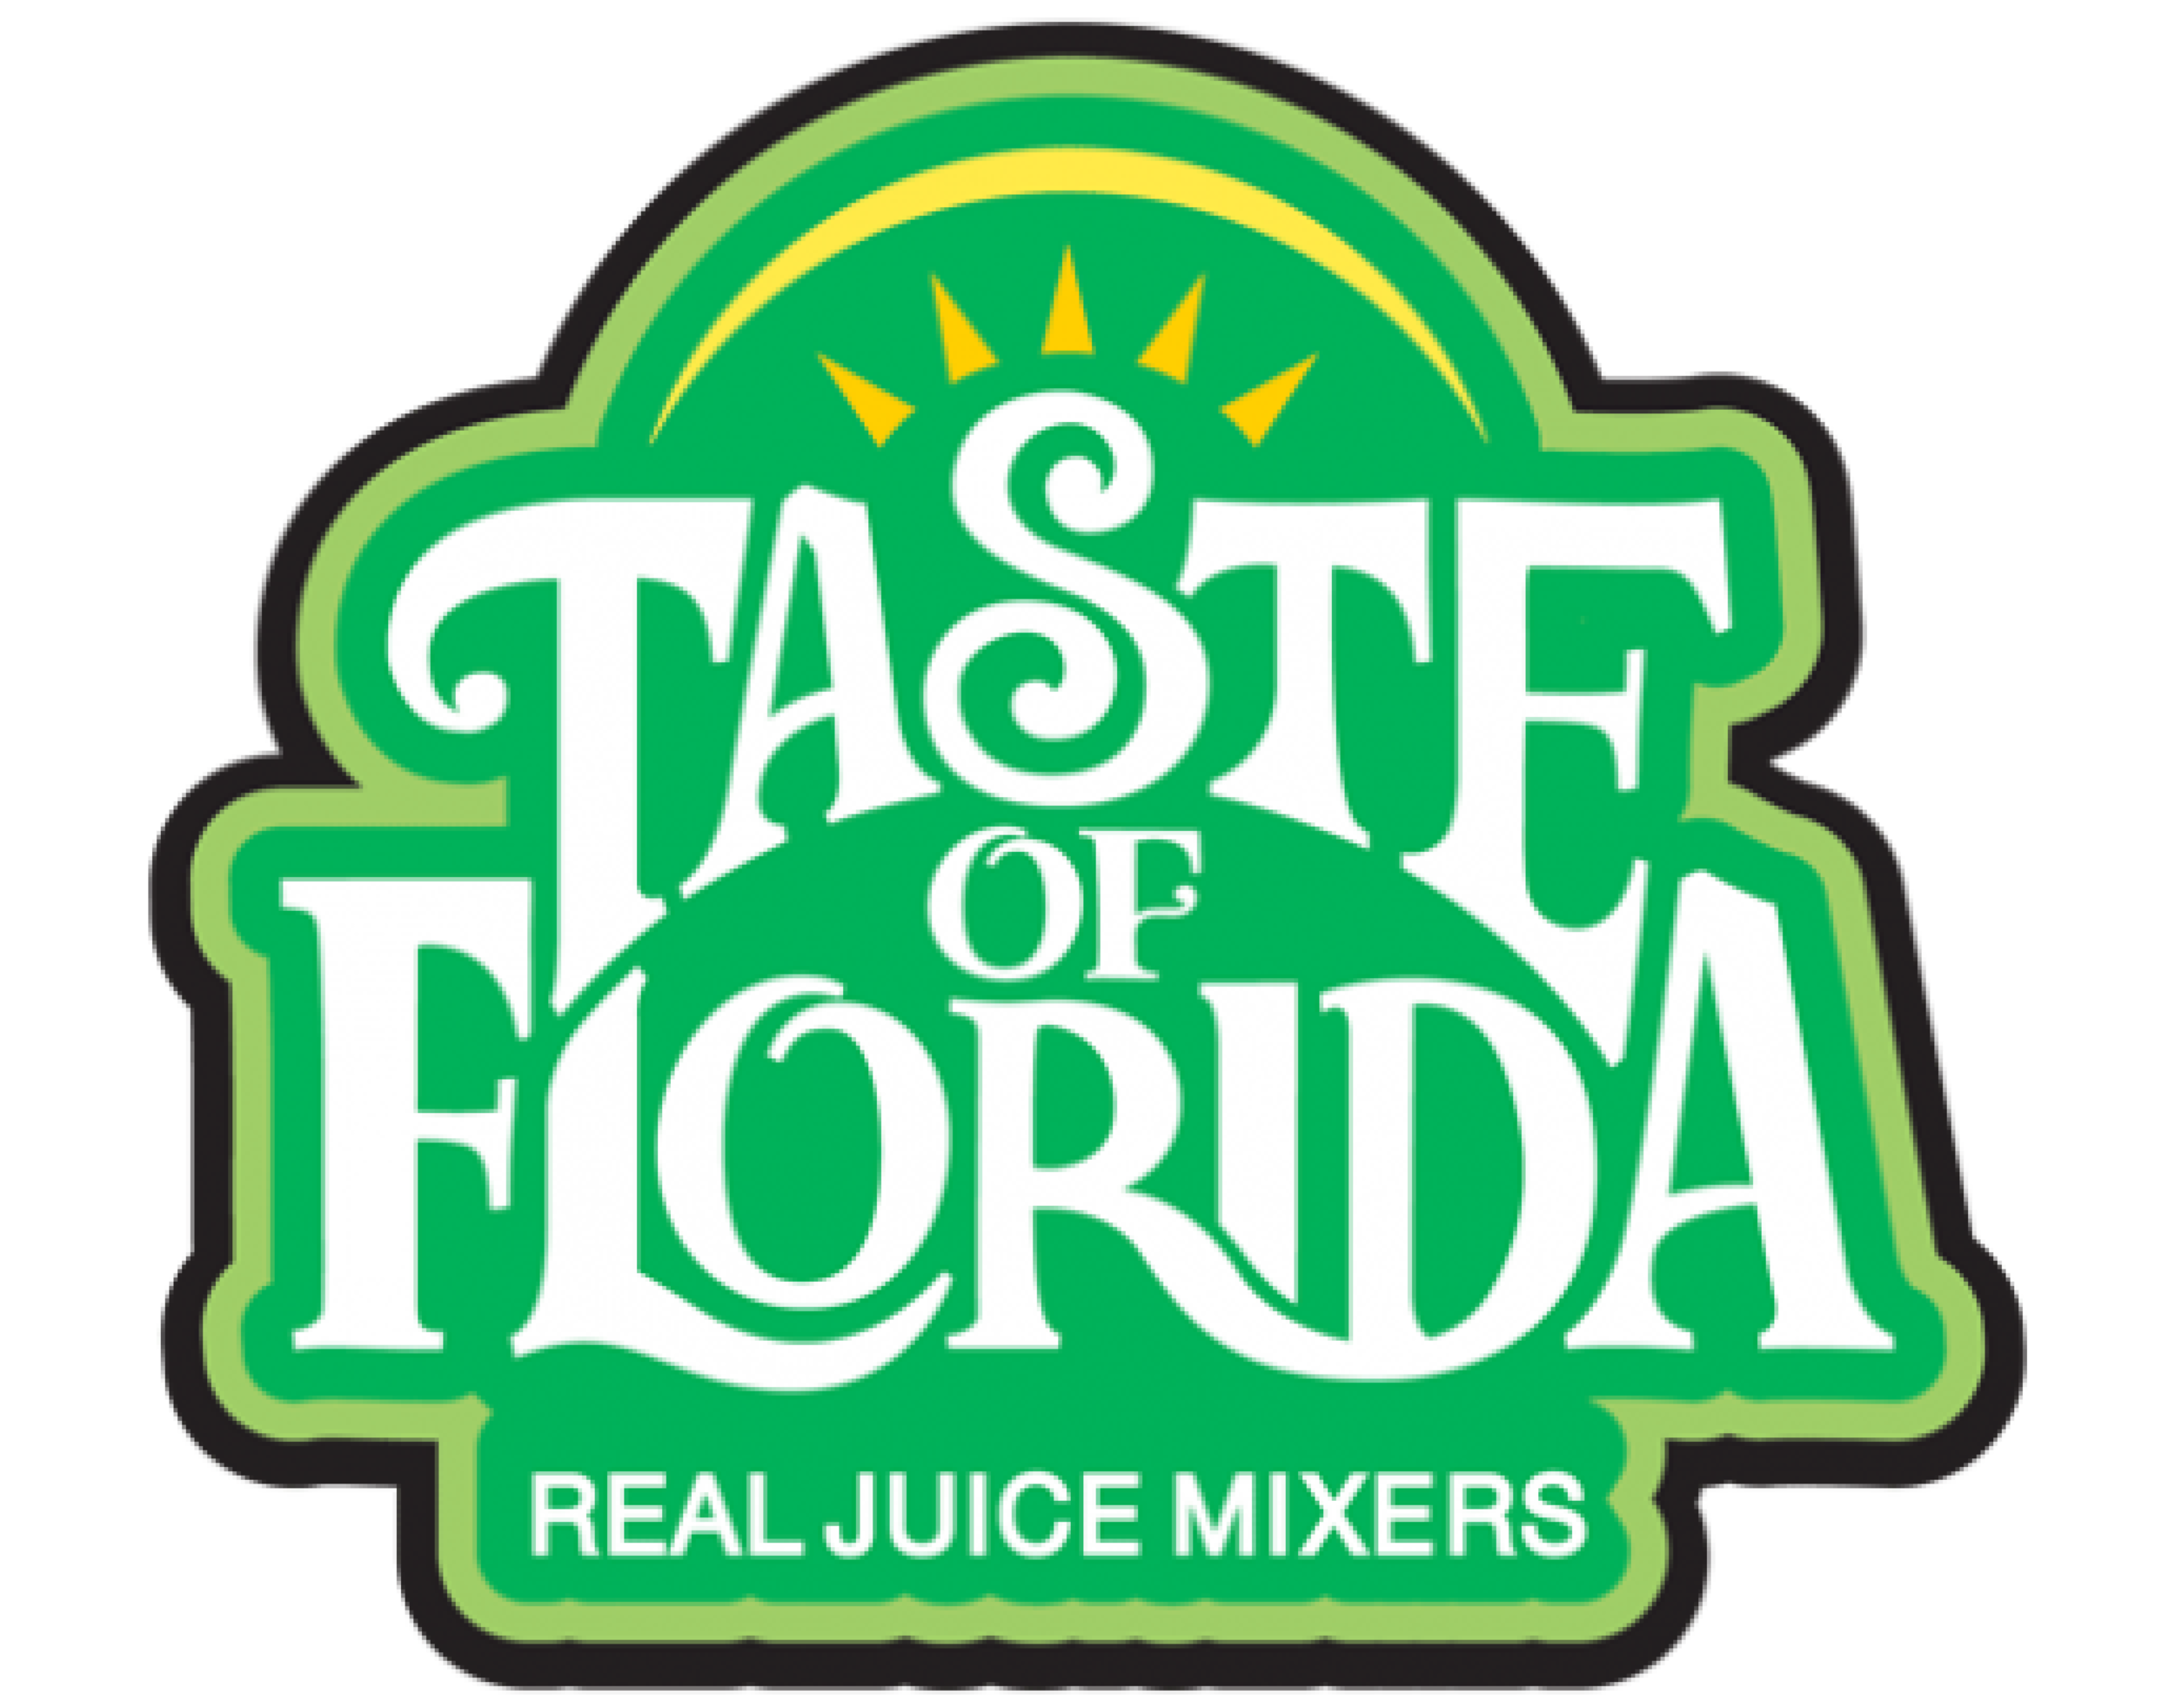 Taste of Florida logo. Links to Taste of Florida website.